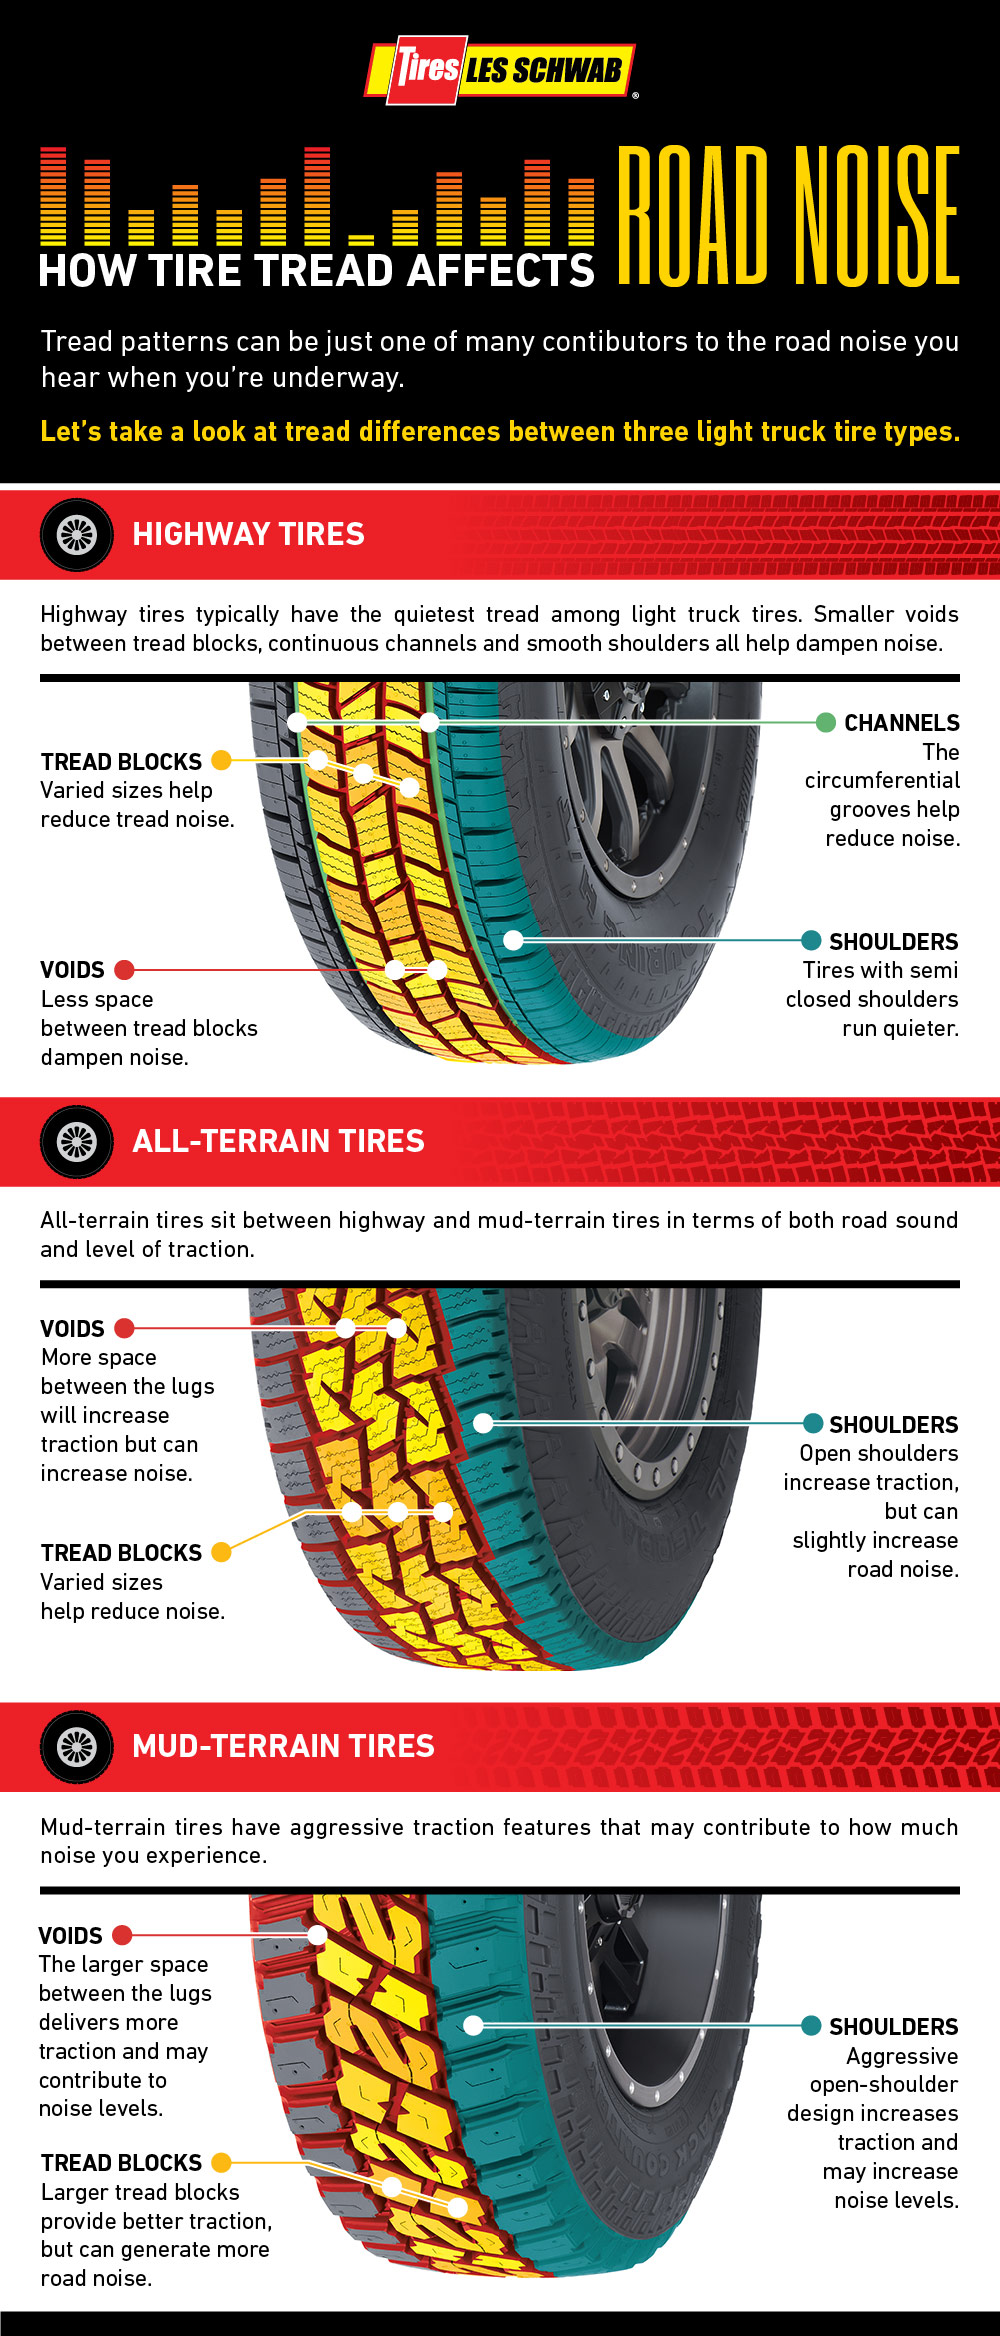 Want Quiet Tires? Look for These Features - Les Schwab